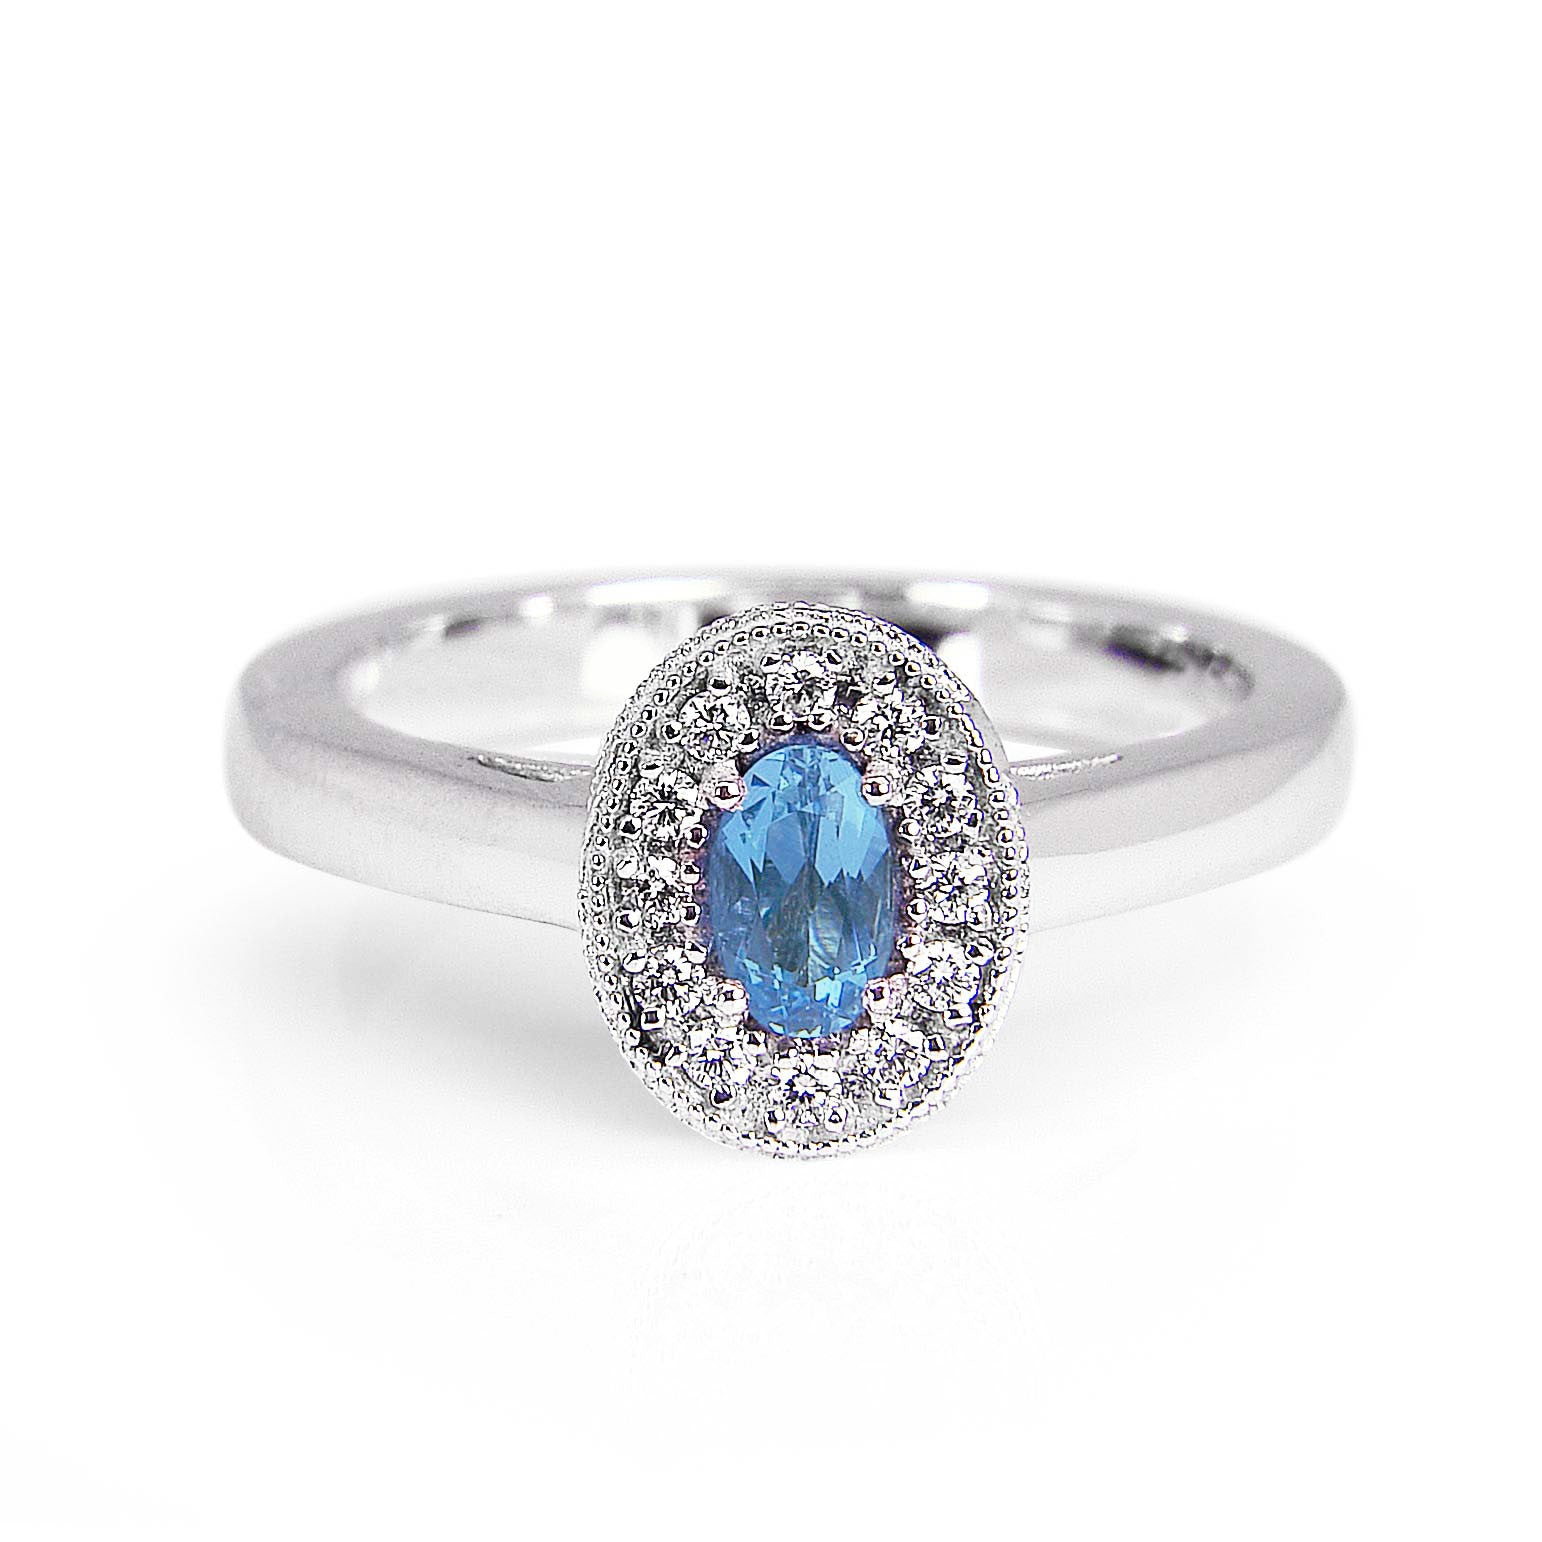 Bespoke Jenna Engagement Ring